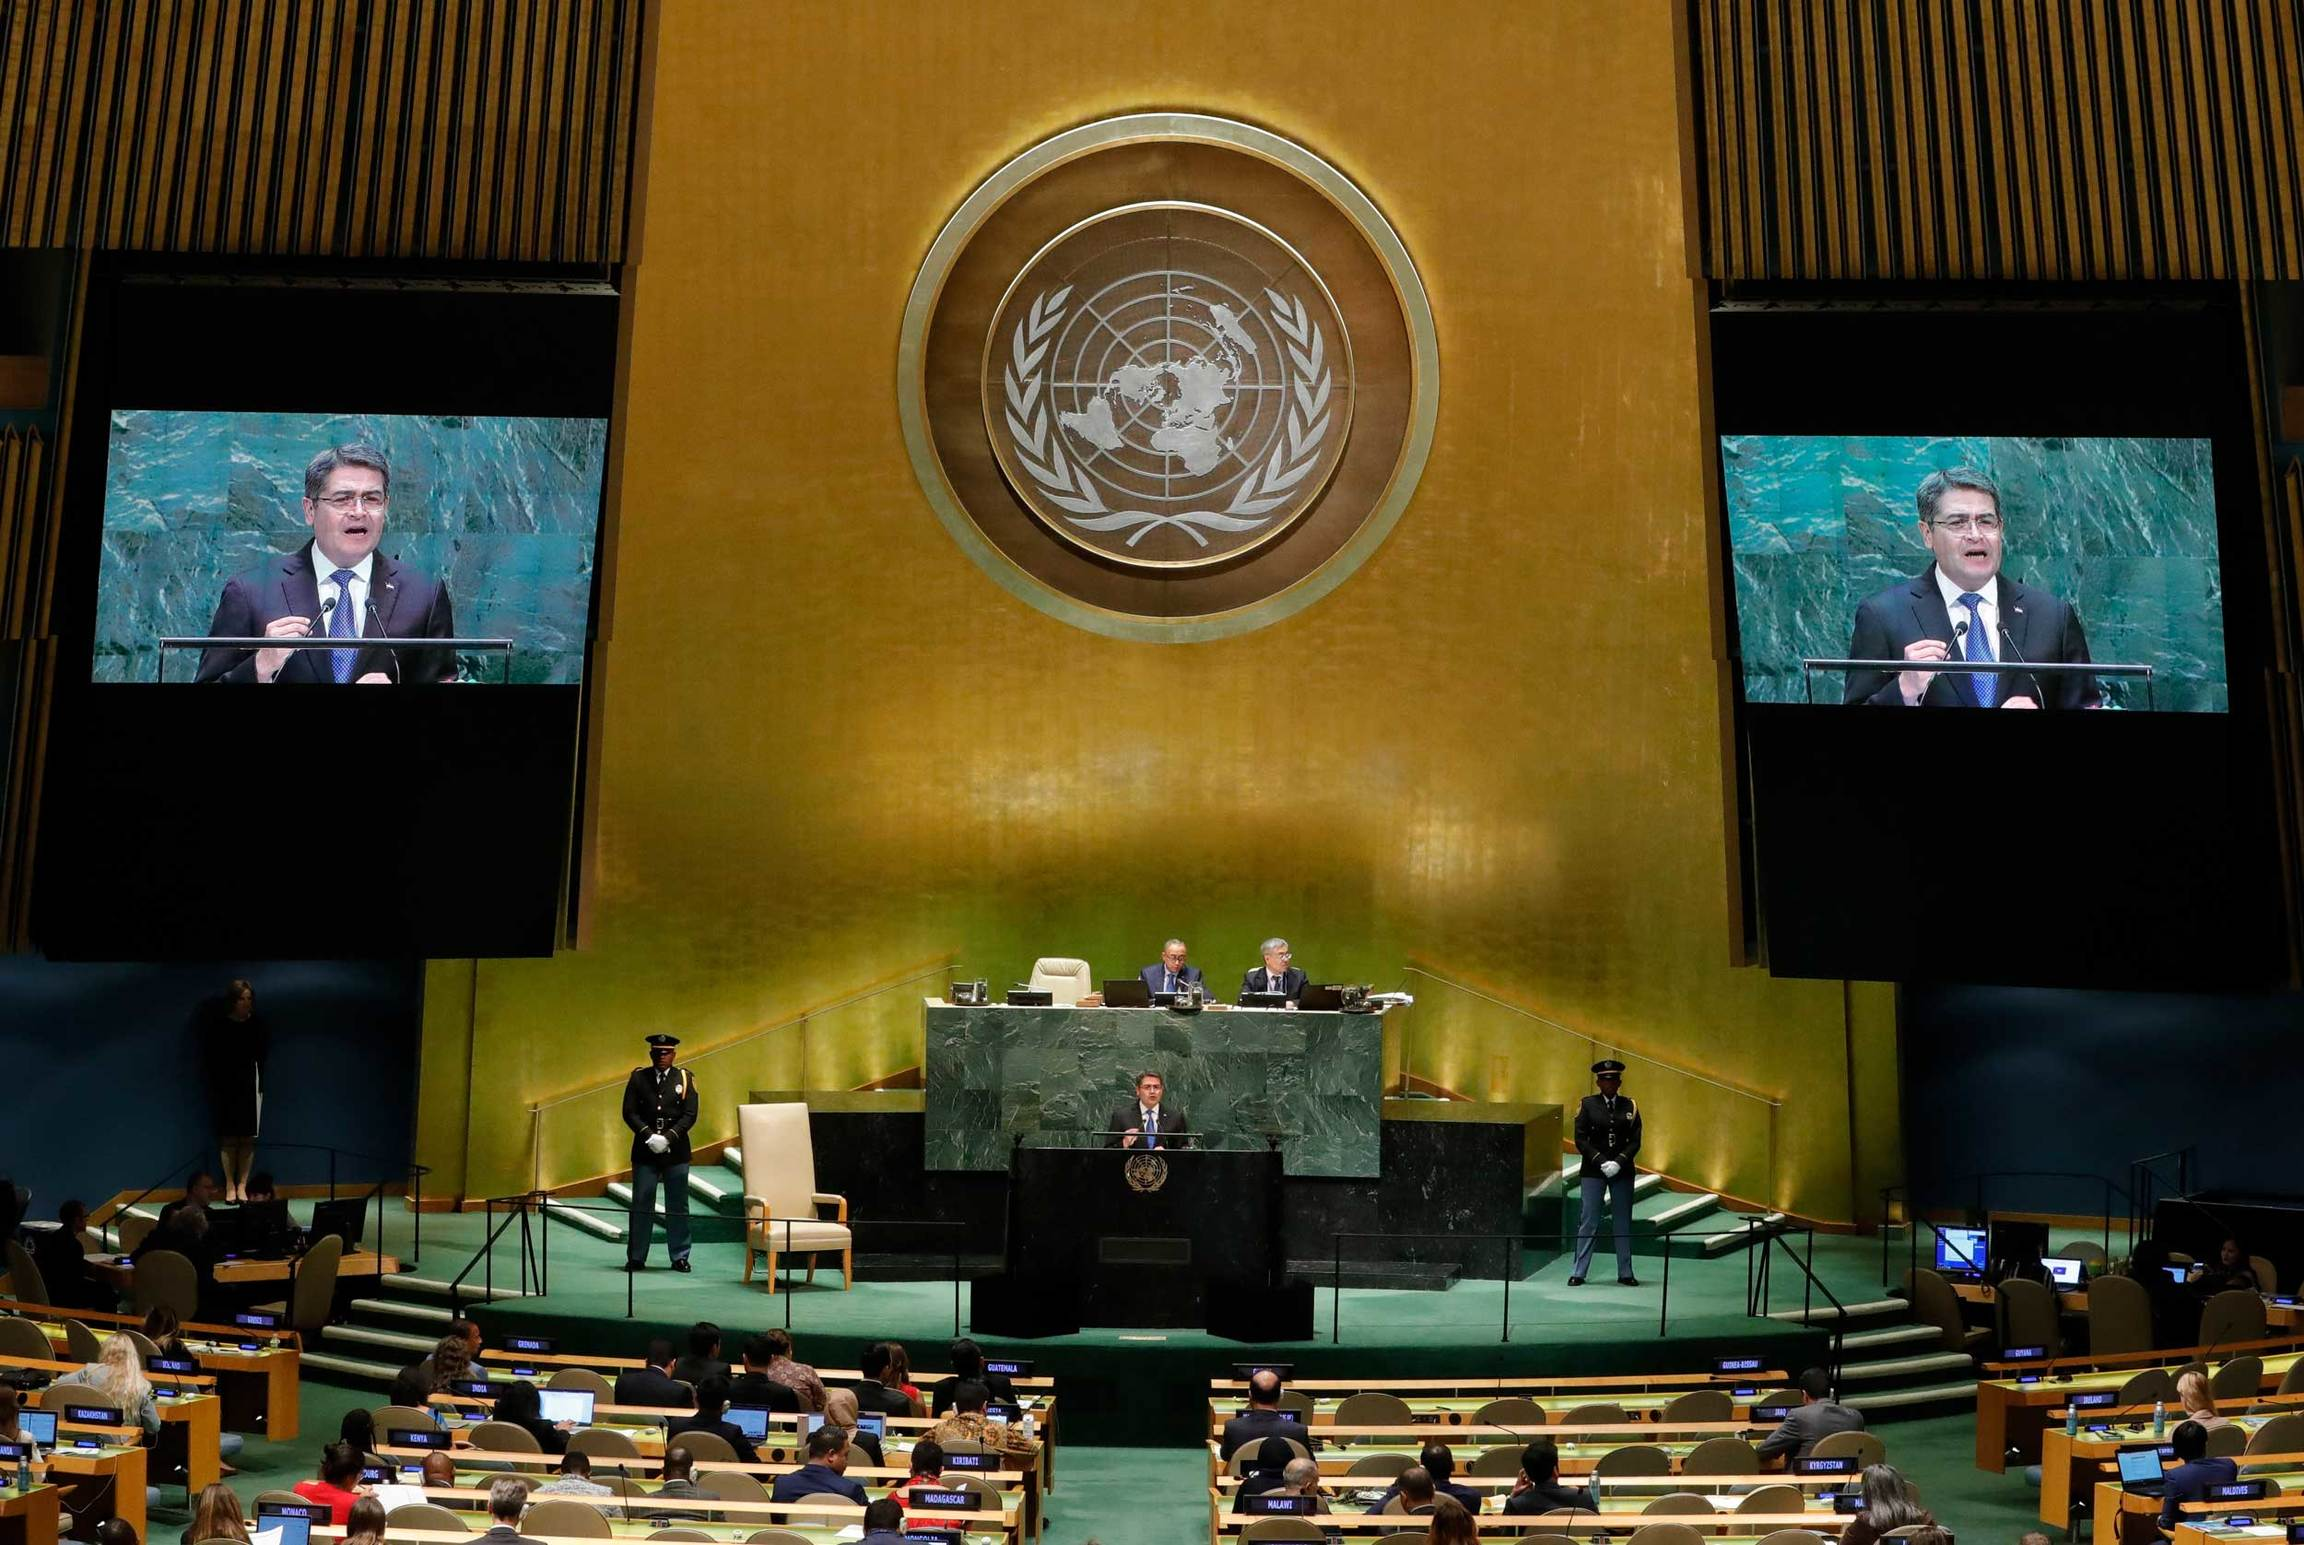 A man speaks at the UN. His image is seen in two screens at left and right of the stage.